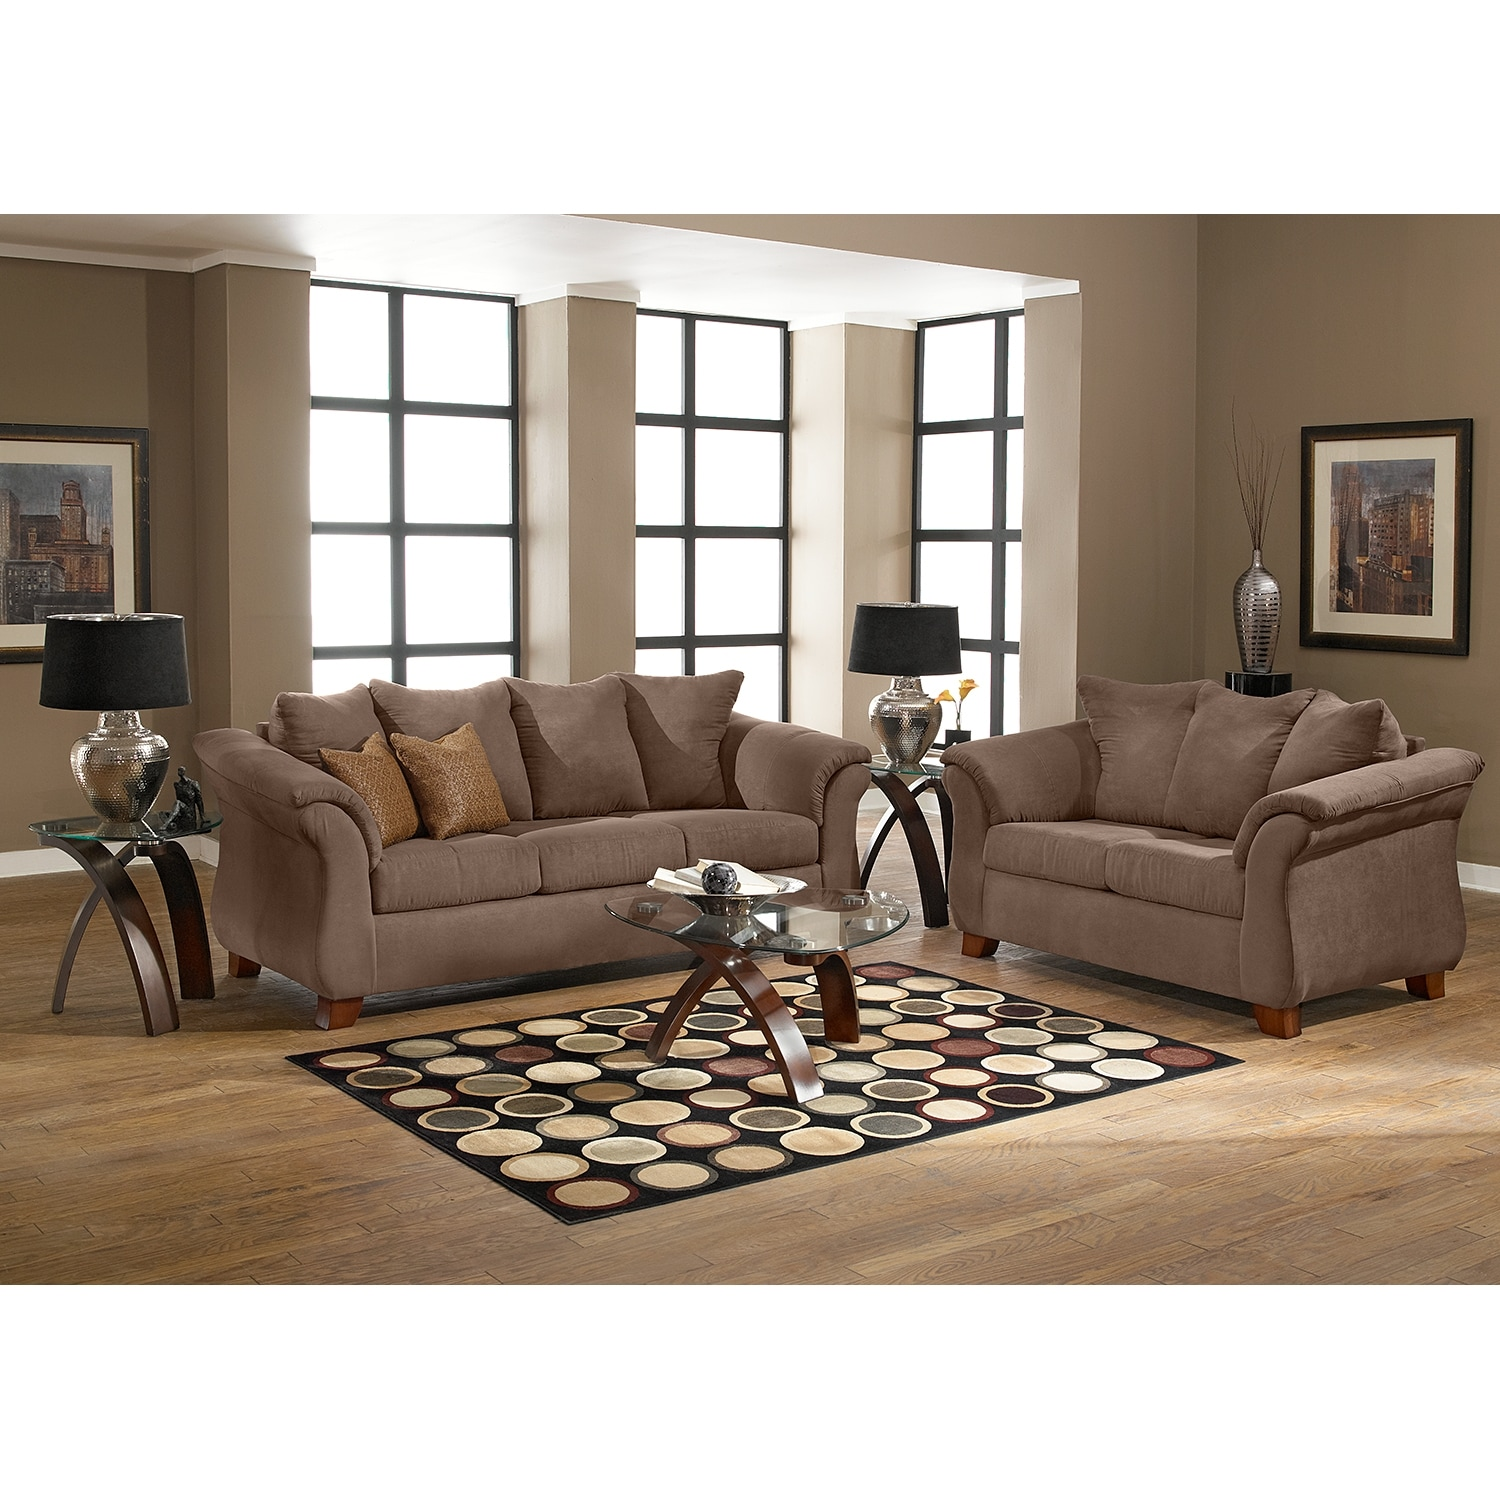 Adrian sofa taupe american signature furniture for Family room furniture